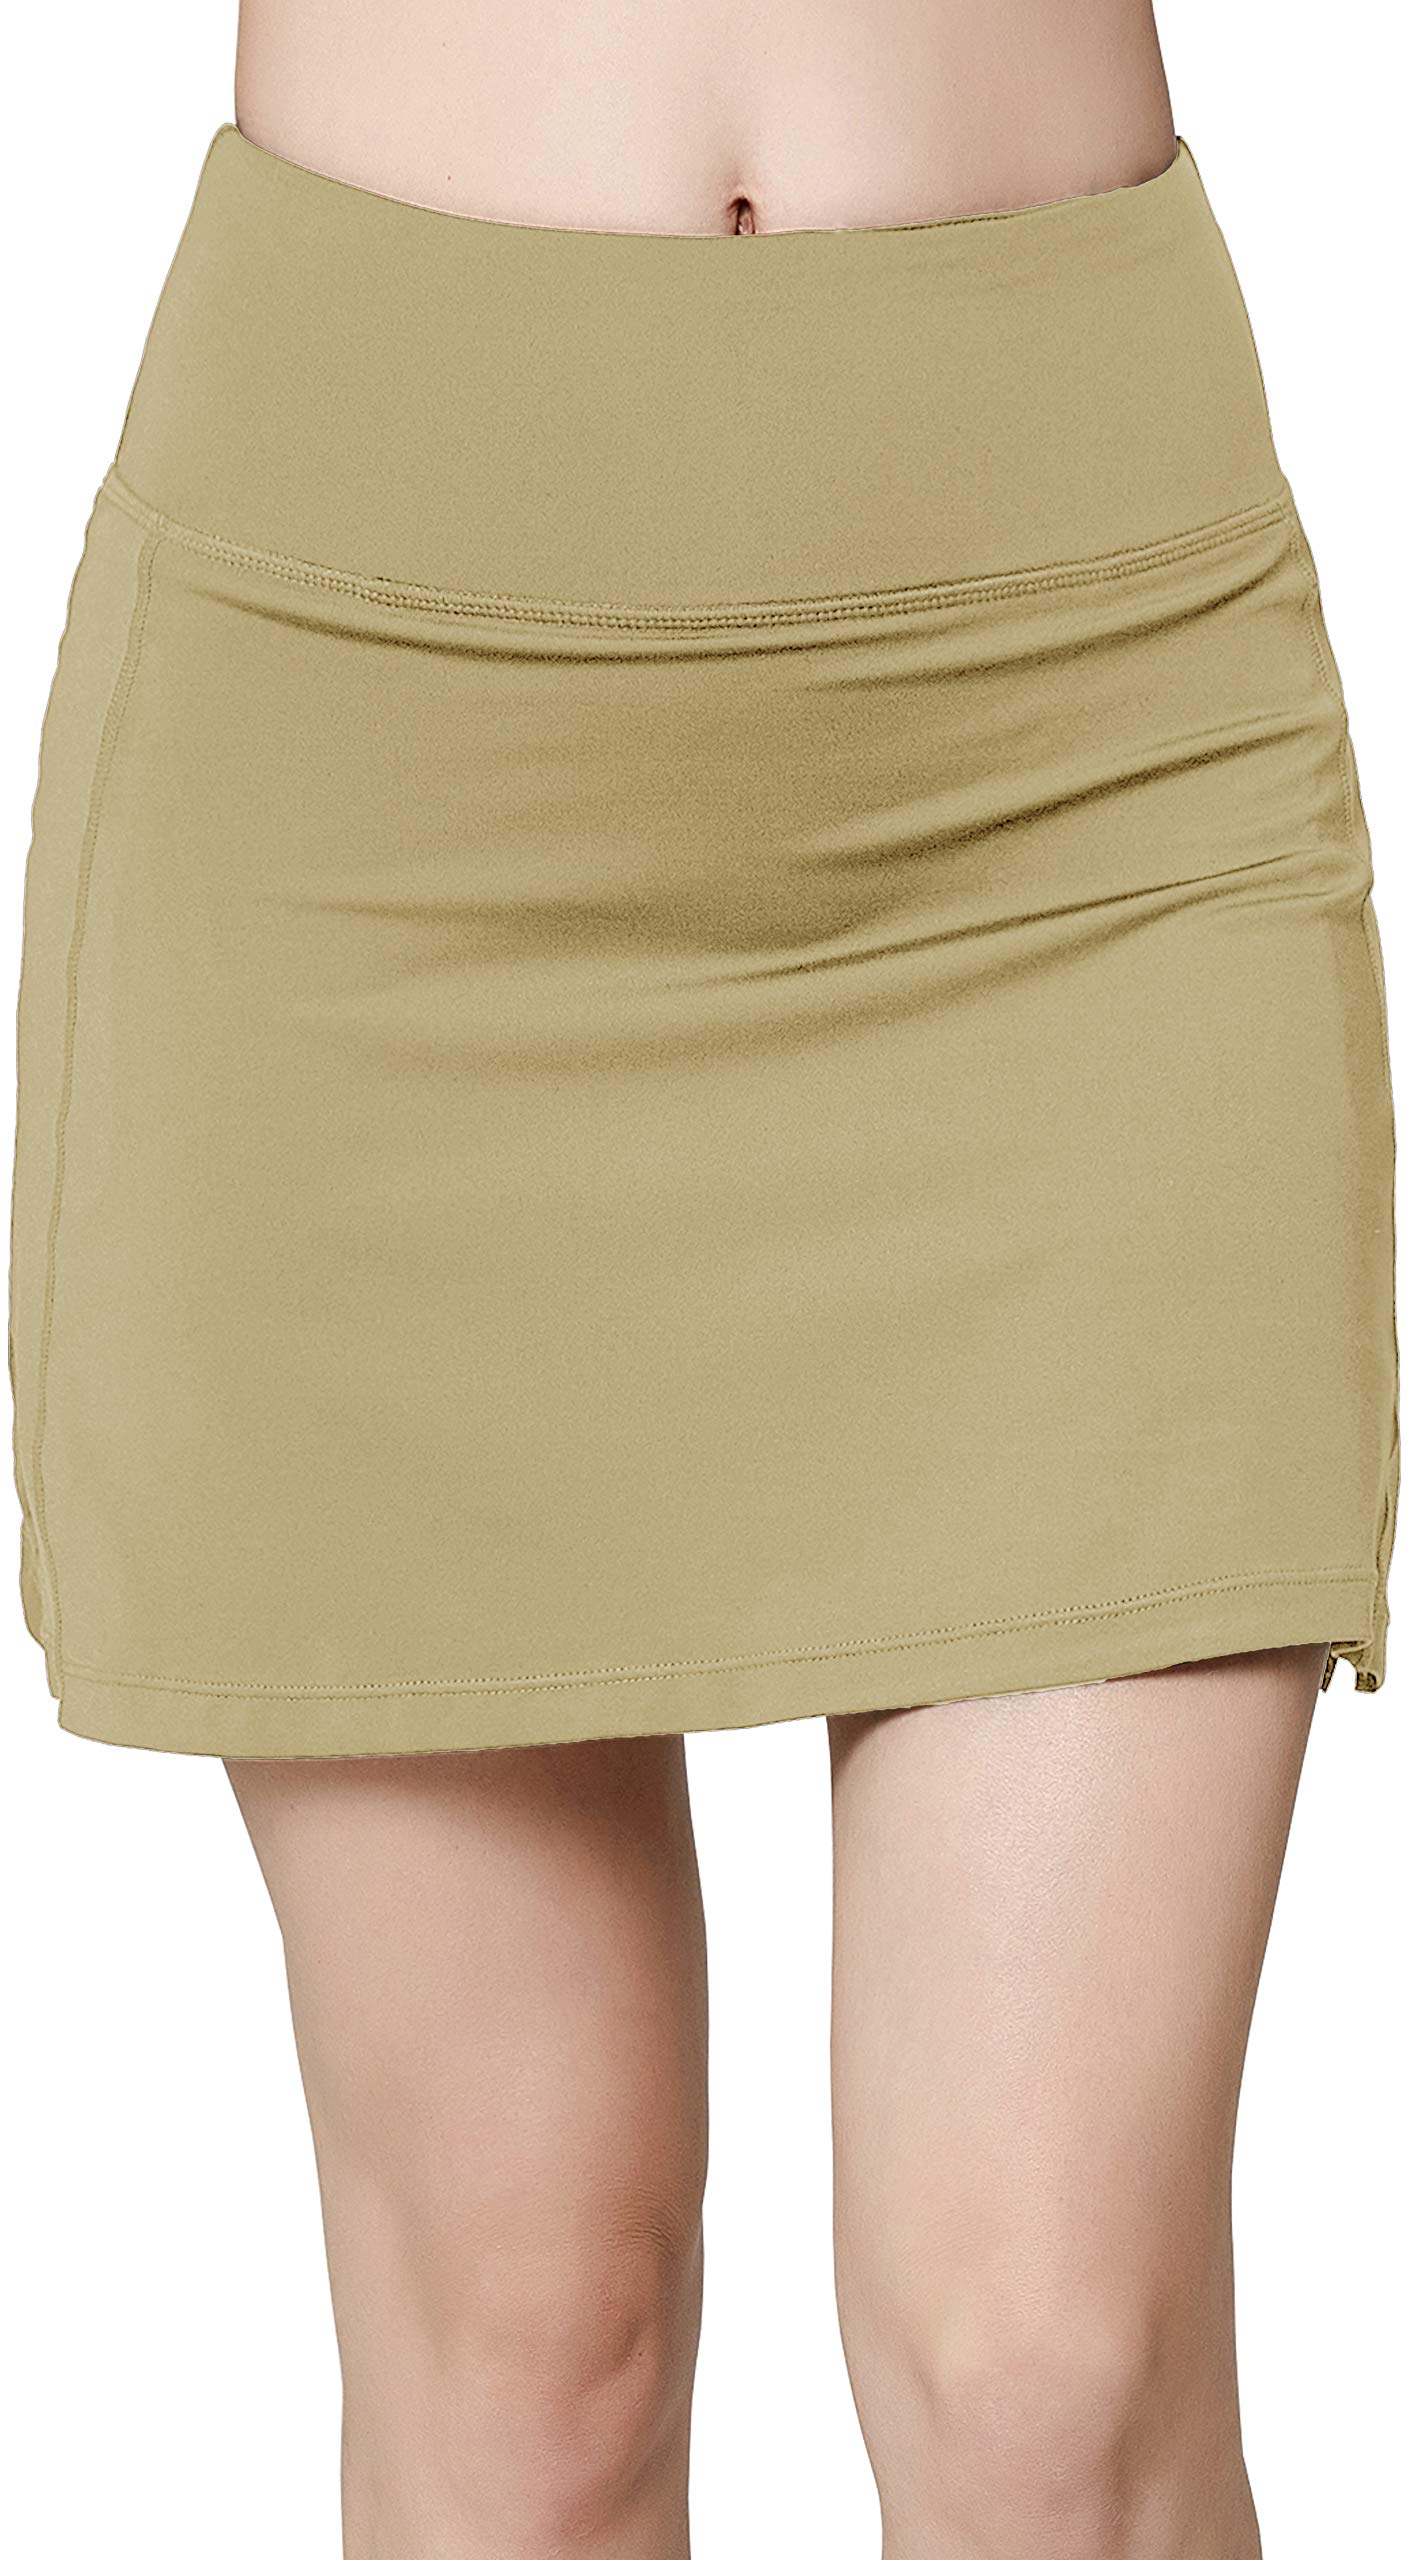 Women's Active Athletic Skirt Sports Golf Tennis Running Pockets Skort Khaki S by Oalka